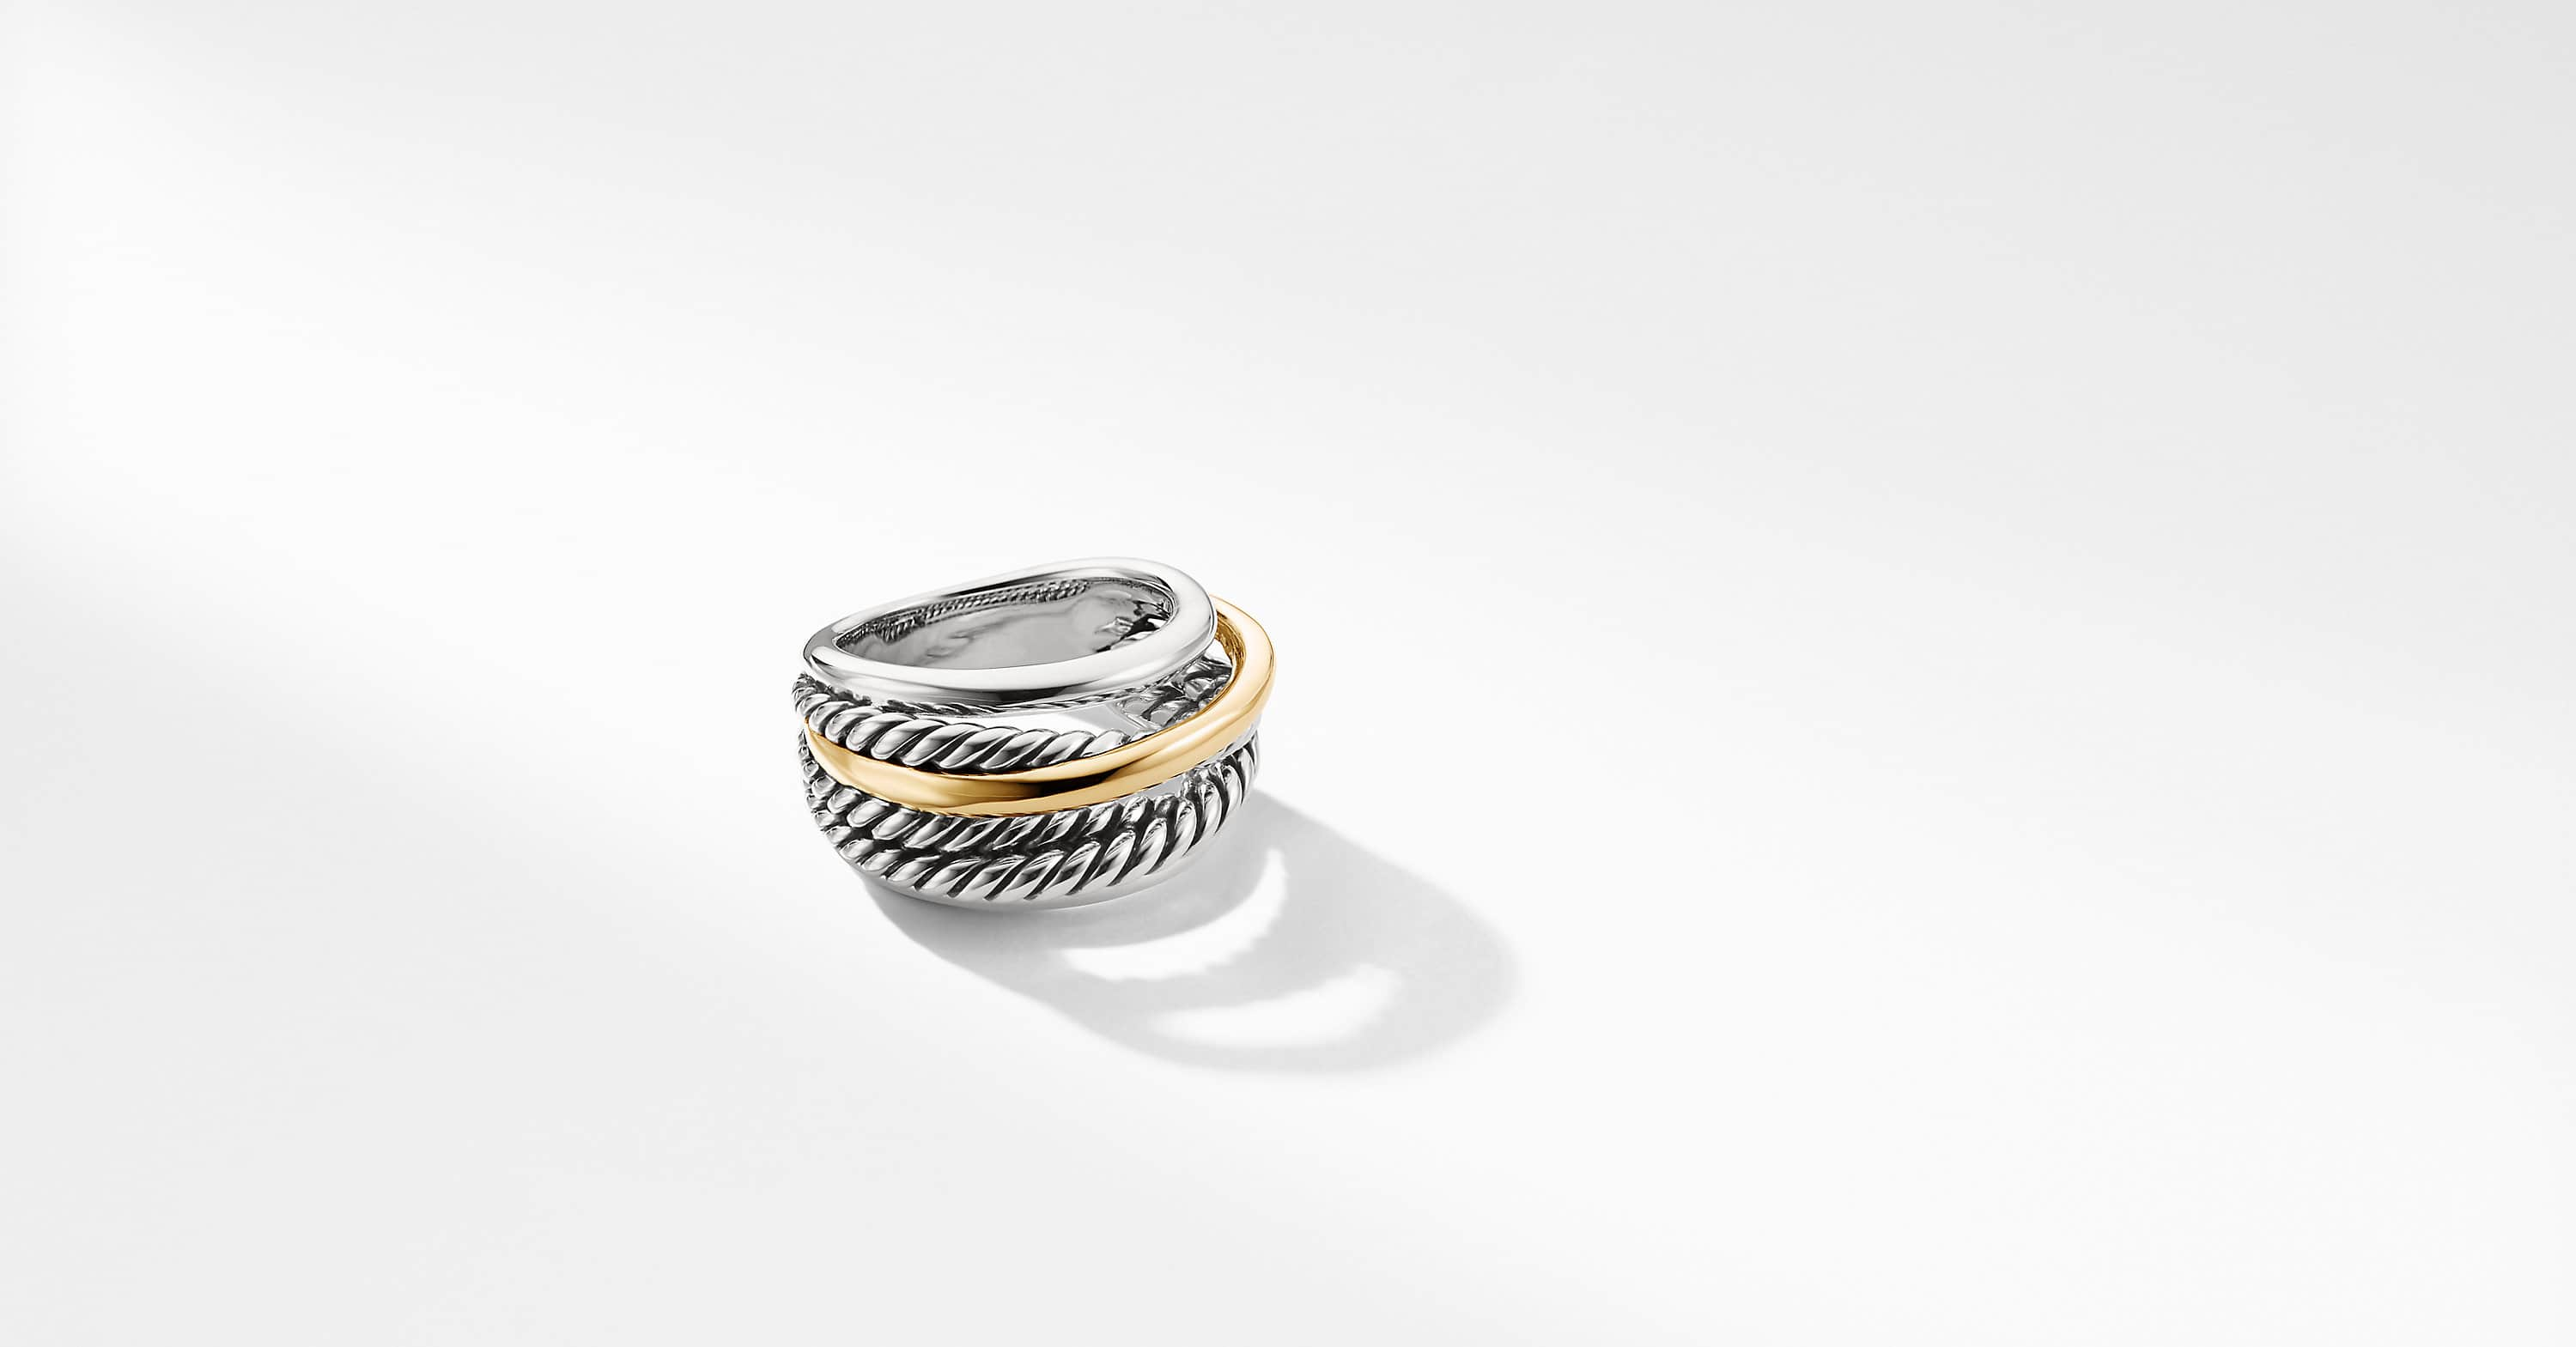 The Crossover Collection Narrow Ring with 14K Yellow Gold